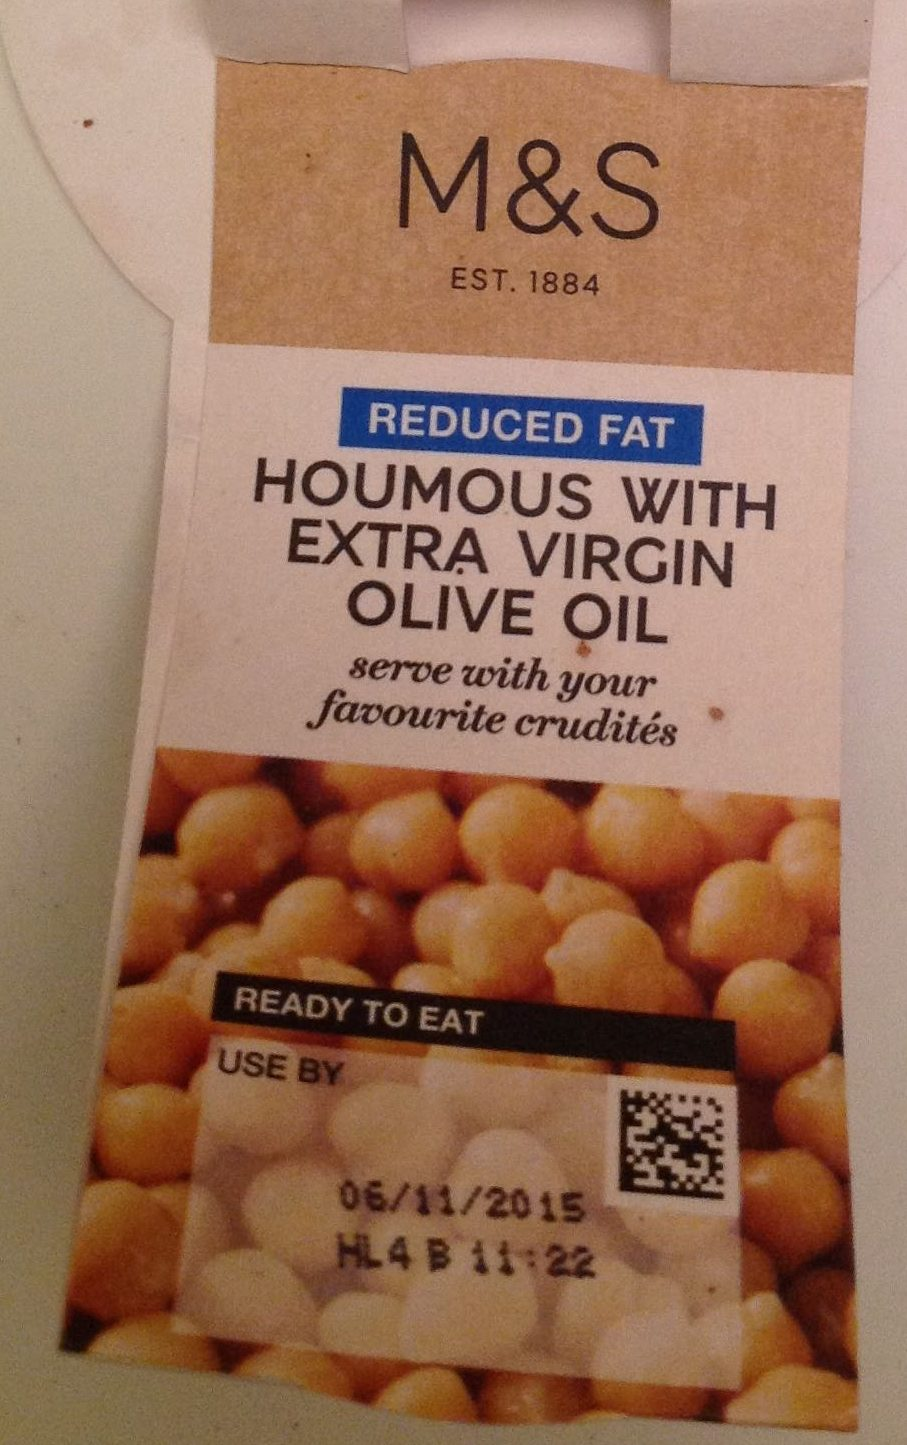 Houmous with Extra Virgin Olive Oil - Product